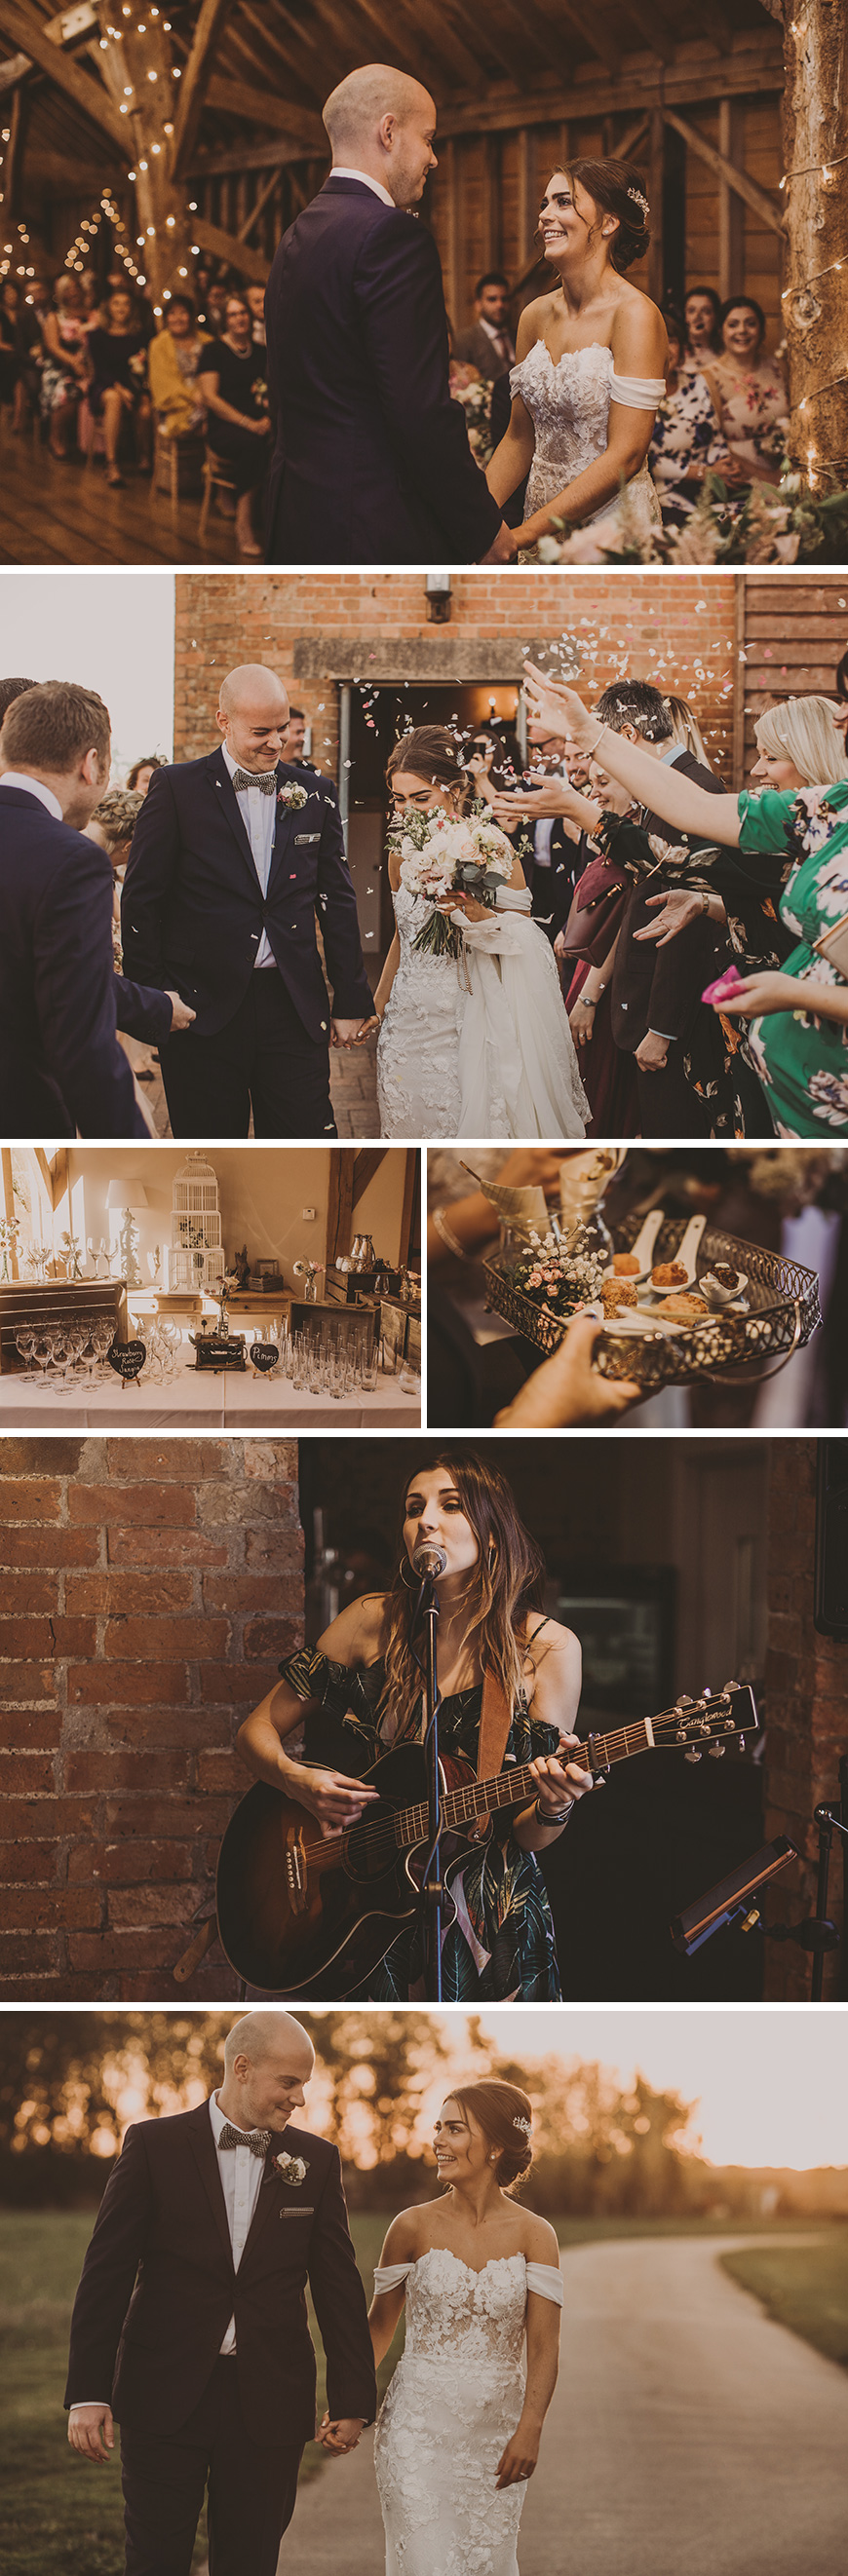 Real Wedding - Sarah and Jonathan's Rustic Autumn Wedding at Bassmead Manor Barns | CHWV